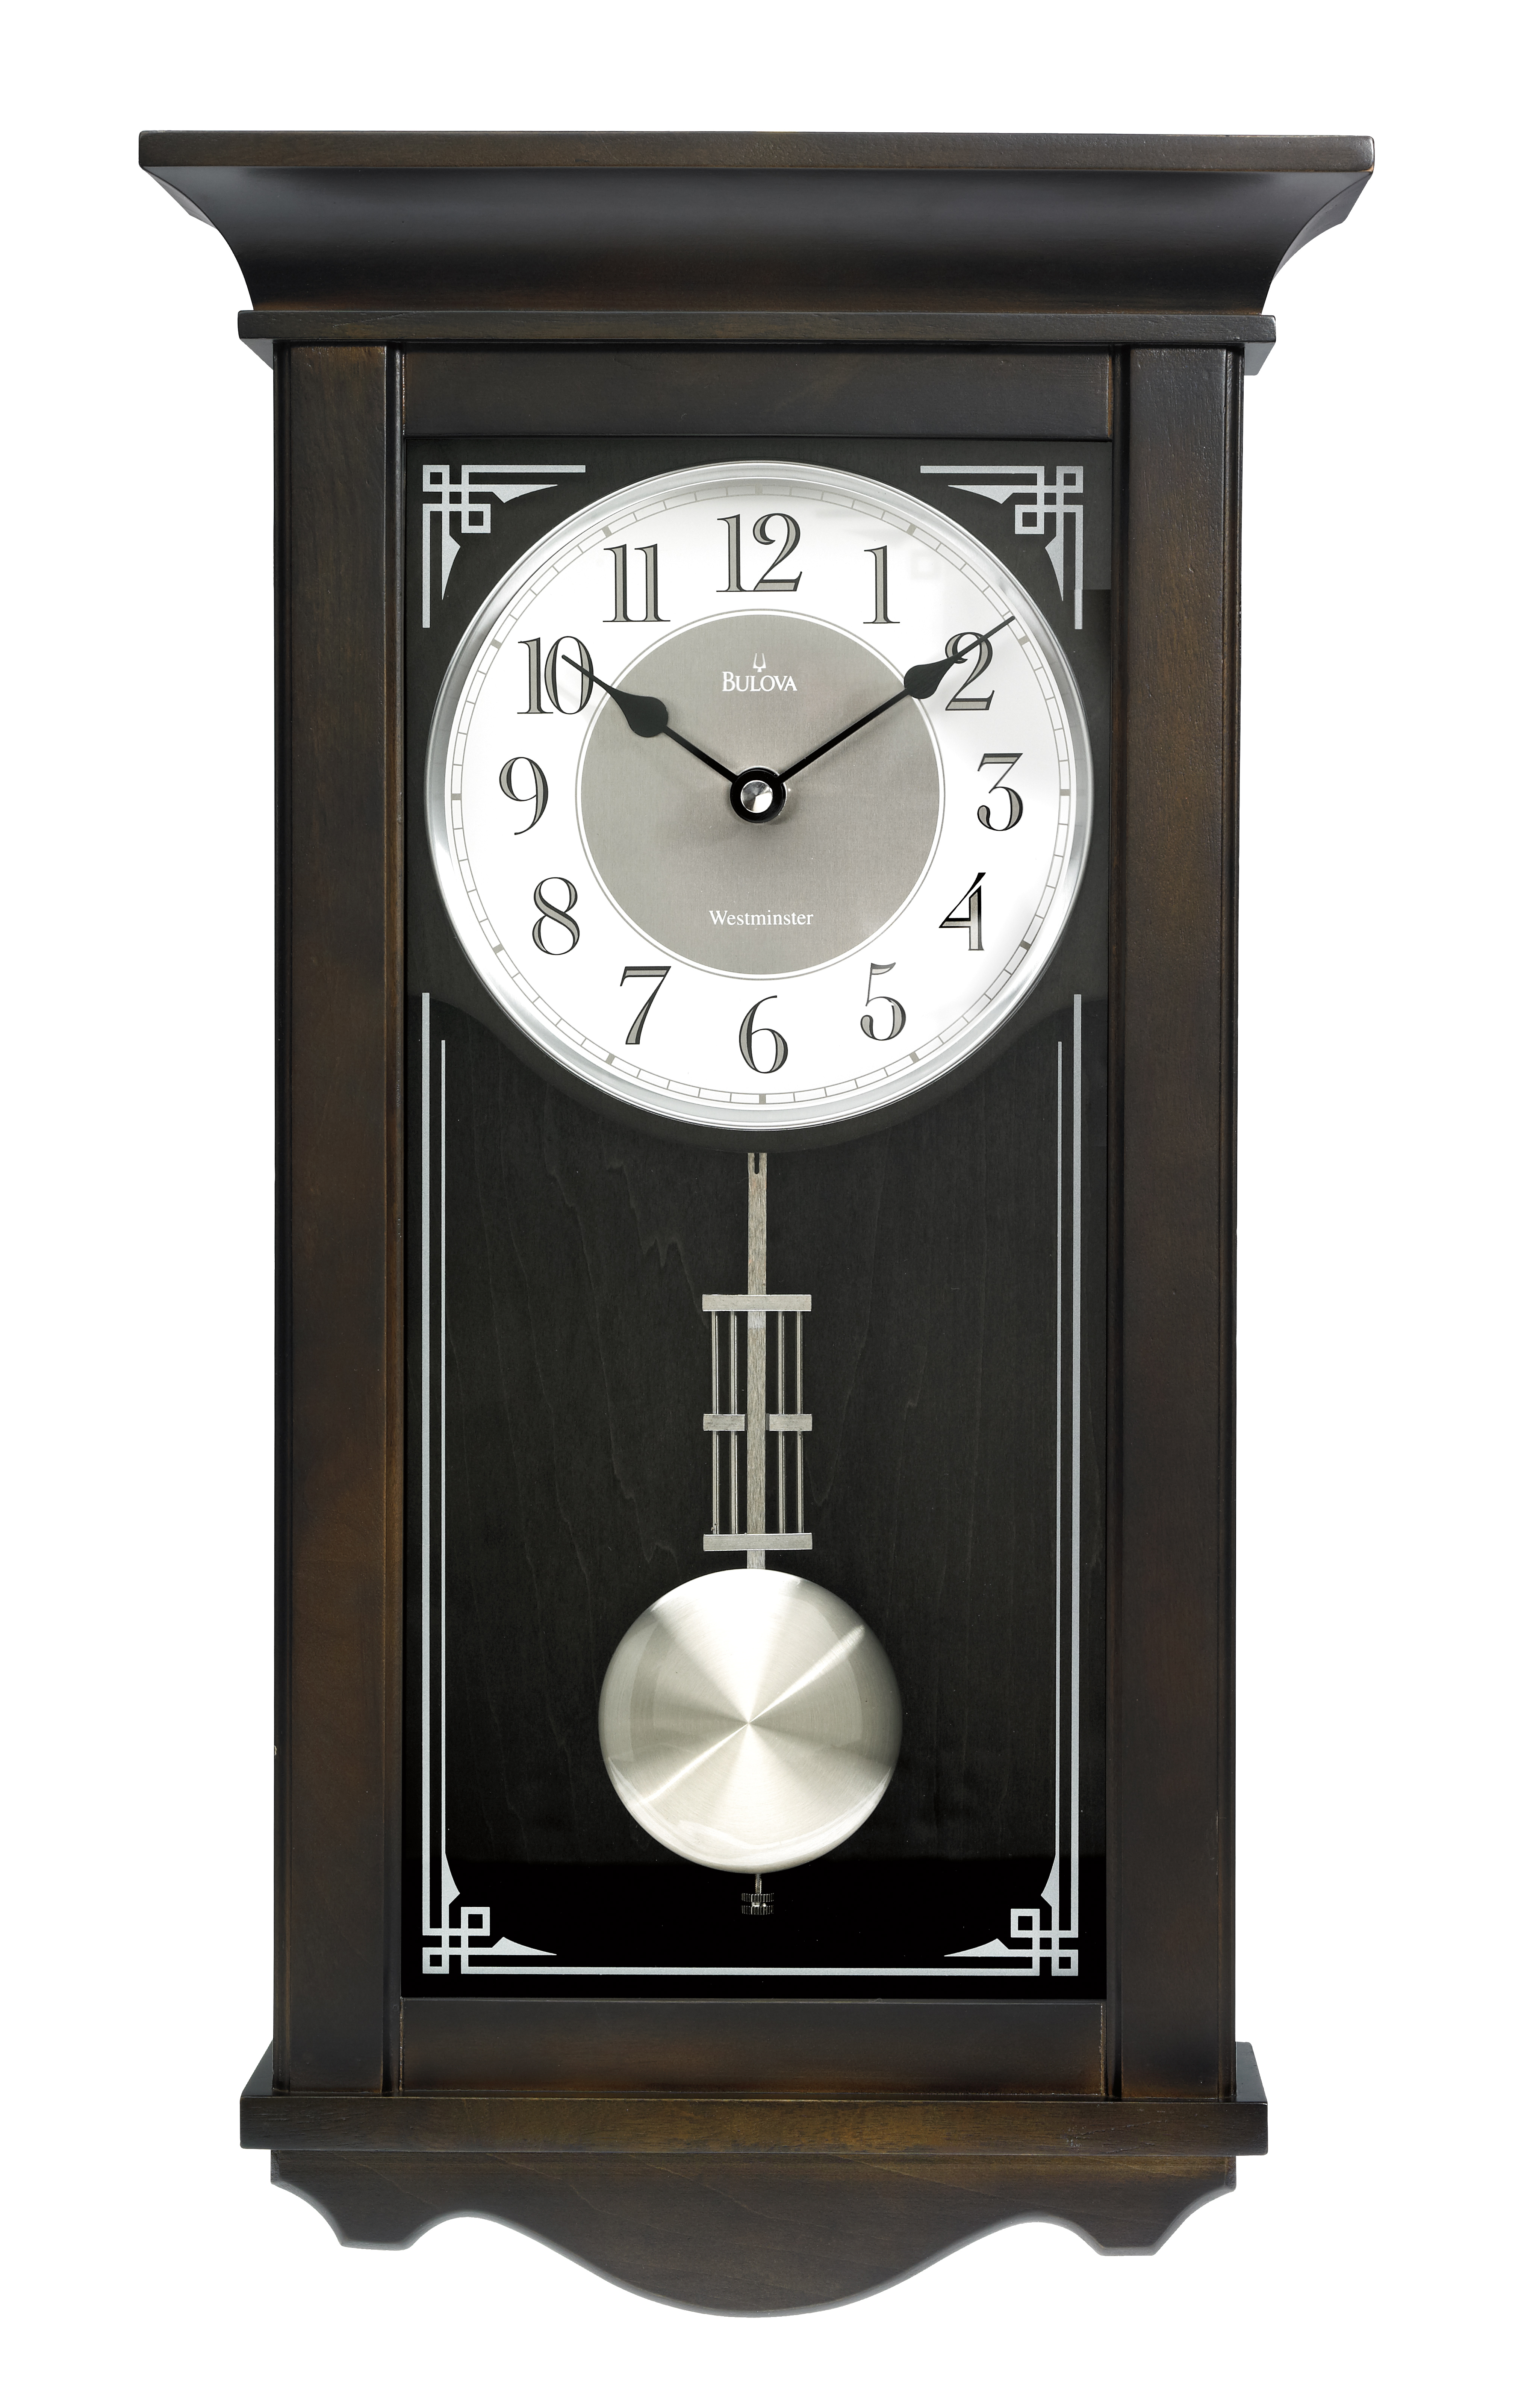 Bulova Elsmere Chiming Pendulum Black Wall Clock u2013 Black Hands u2013 White Dial u2013 C3544 - Clocktiques